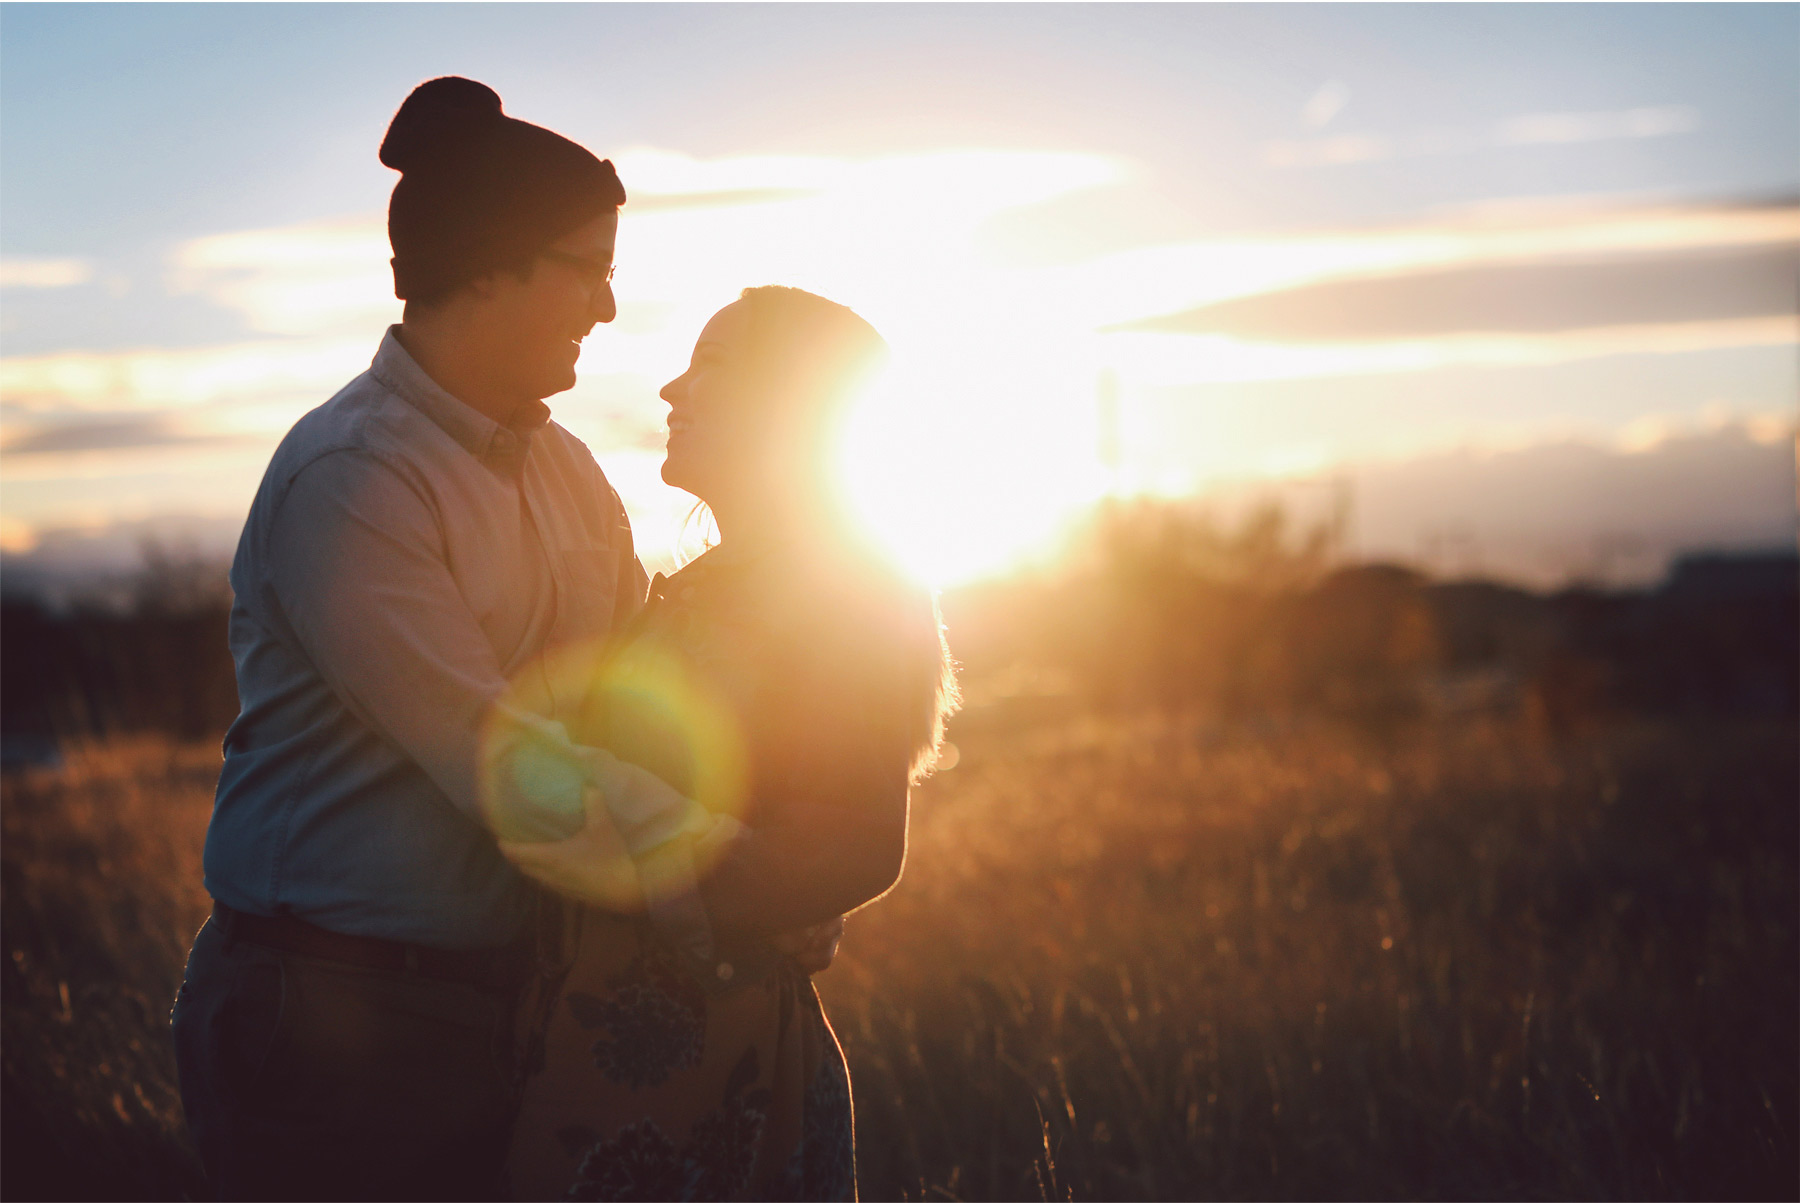 15-Vick-Photography-Fly-to-You-Engagement-Session-Denver-Colorado-Couple-Field-Sunset-Danielle-and-Tom.jpg